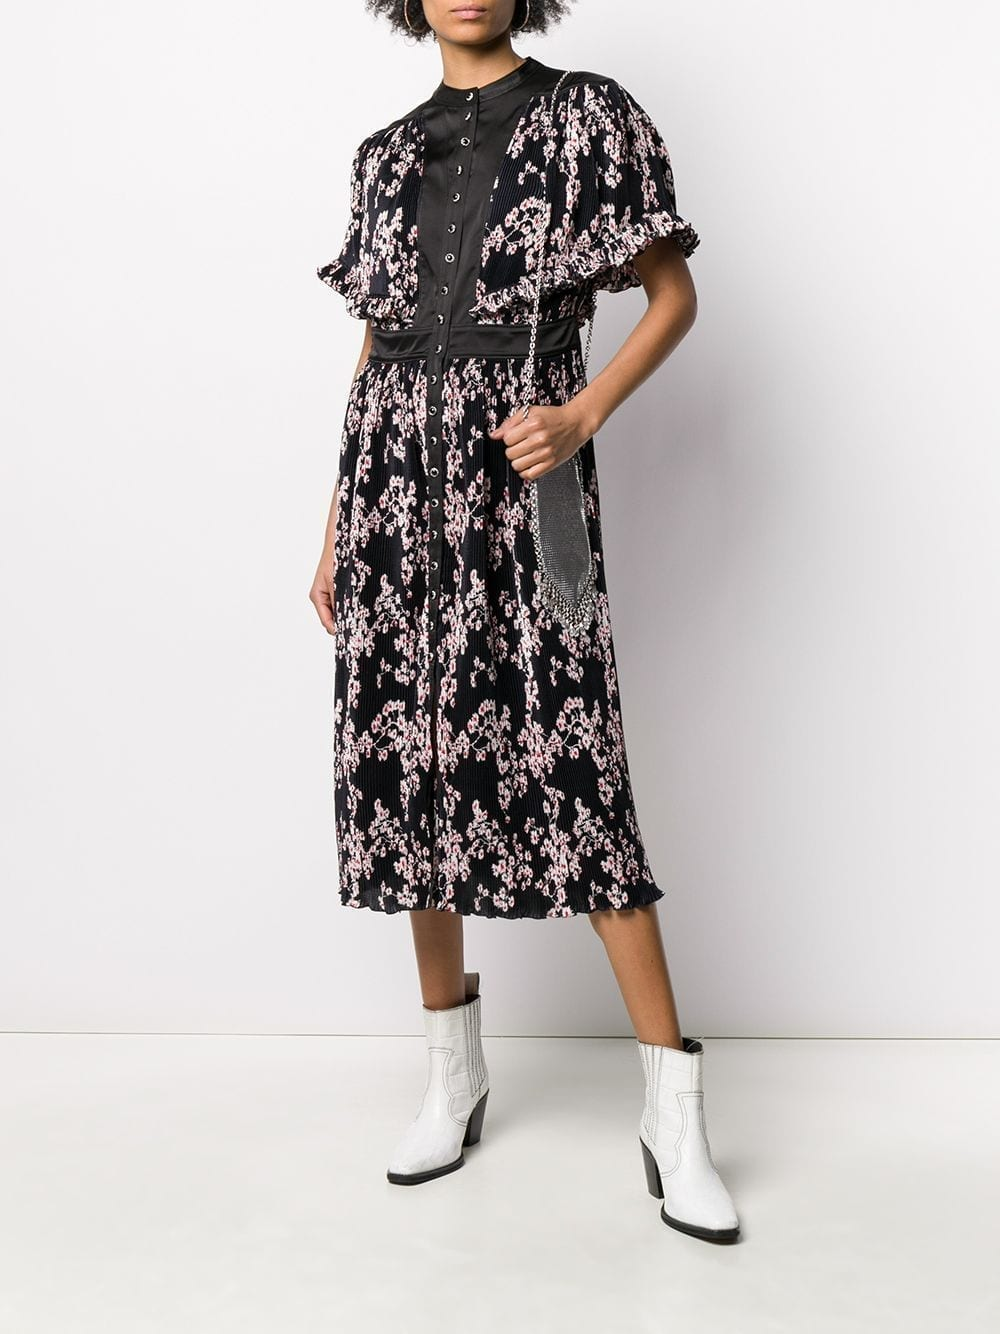 PACO RABANNE Floral-print Pleated Midi Dress